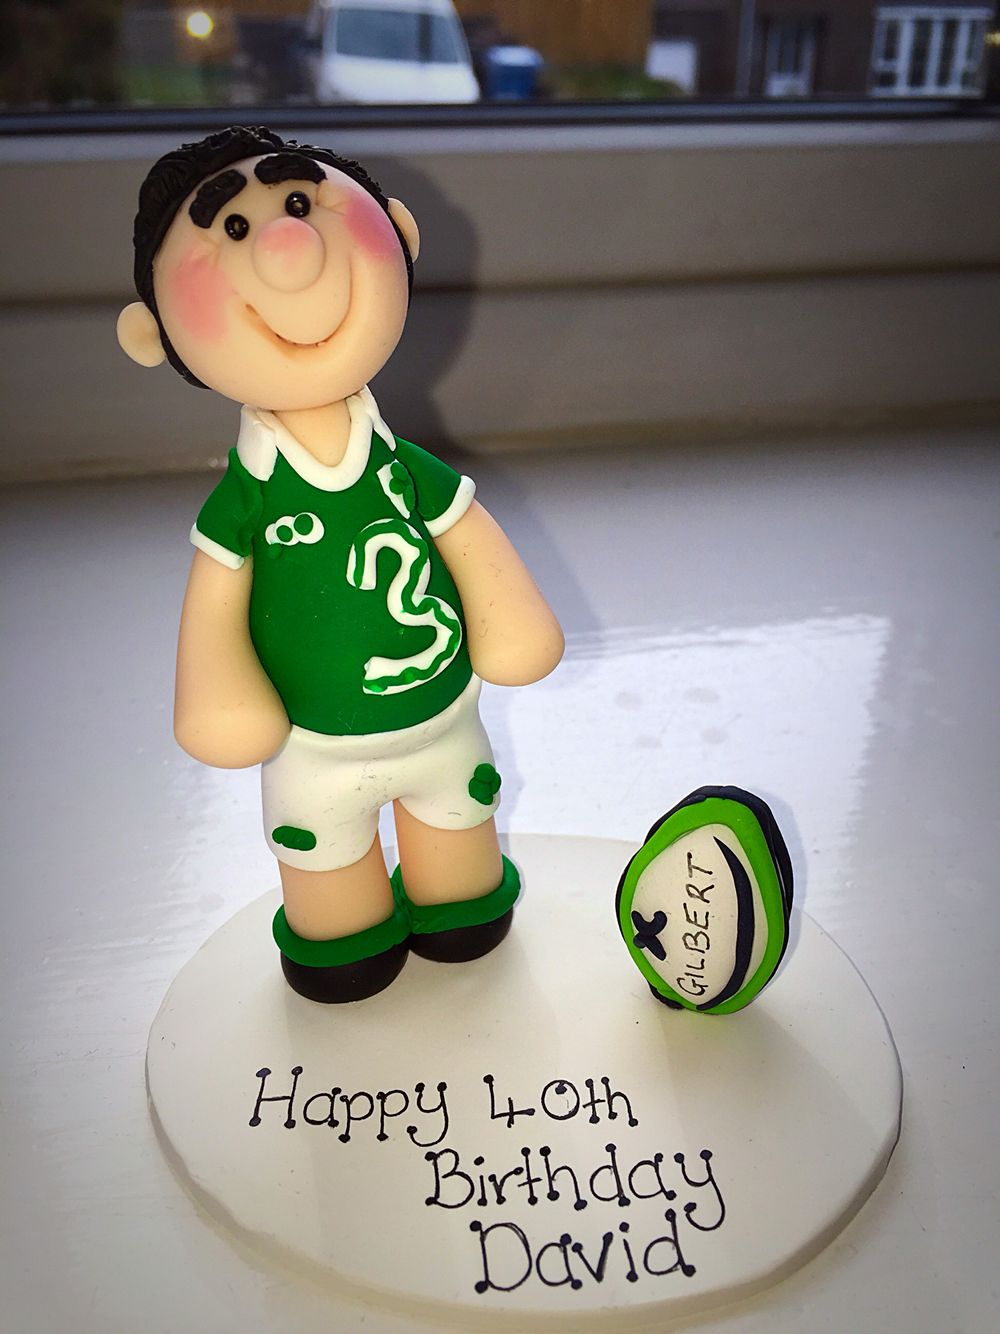 Ireland Rugby Player Birthday Cake Topper Made From Sculpey Clay